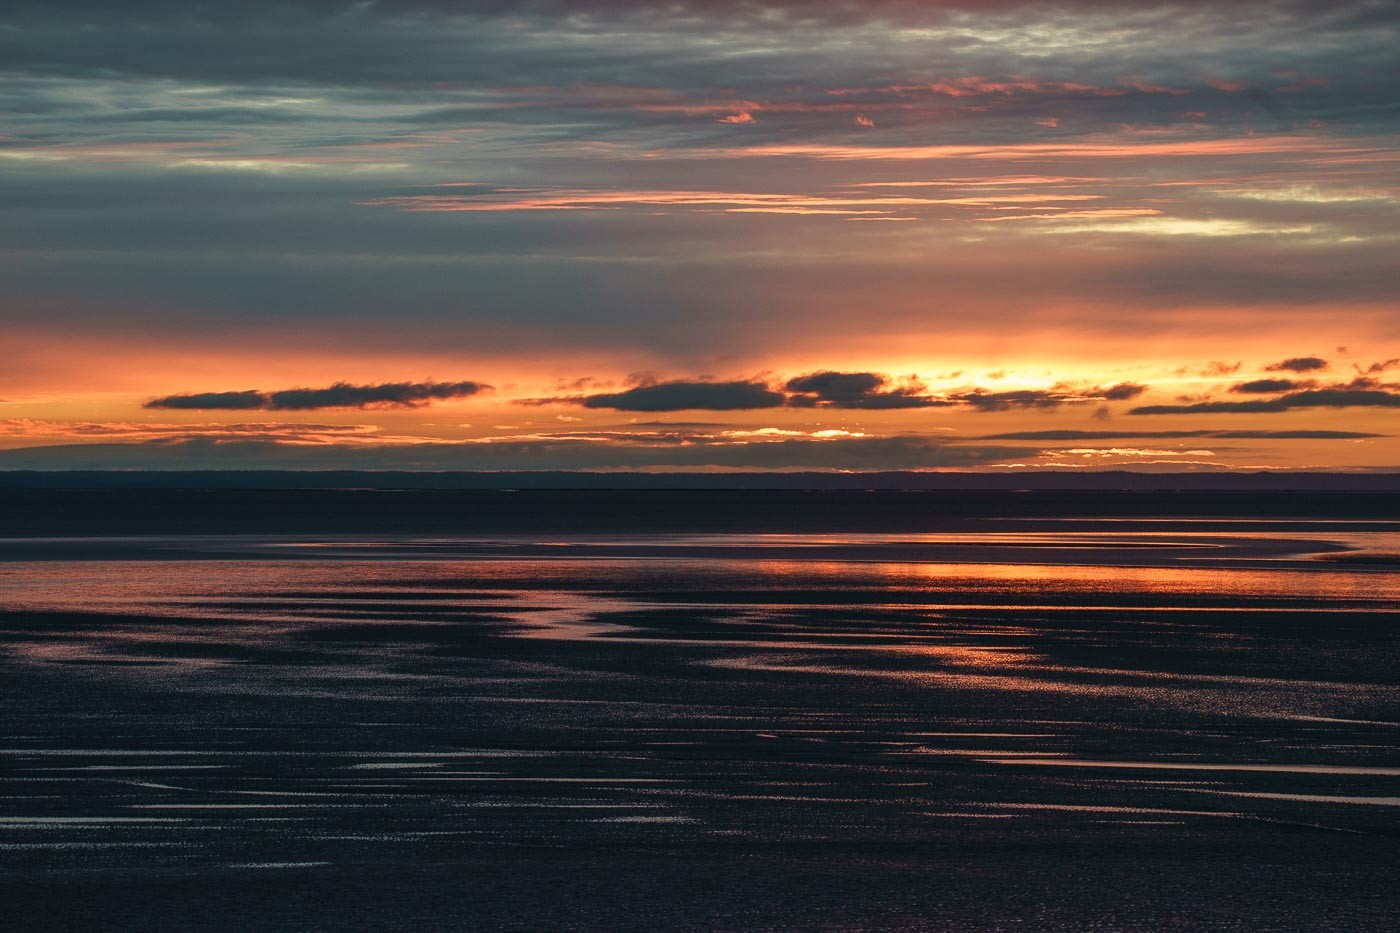 Turnagain Arm at Sunset in Alaska with the Tamron 150-600mm f/5-6.3